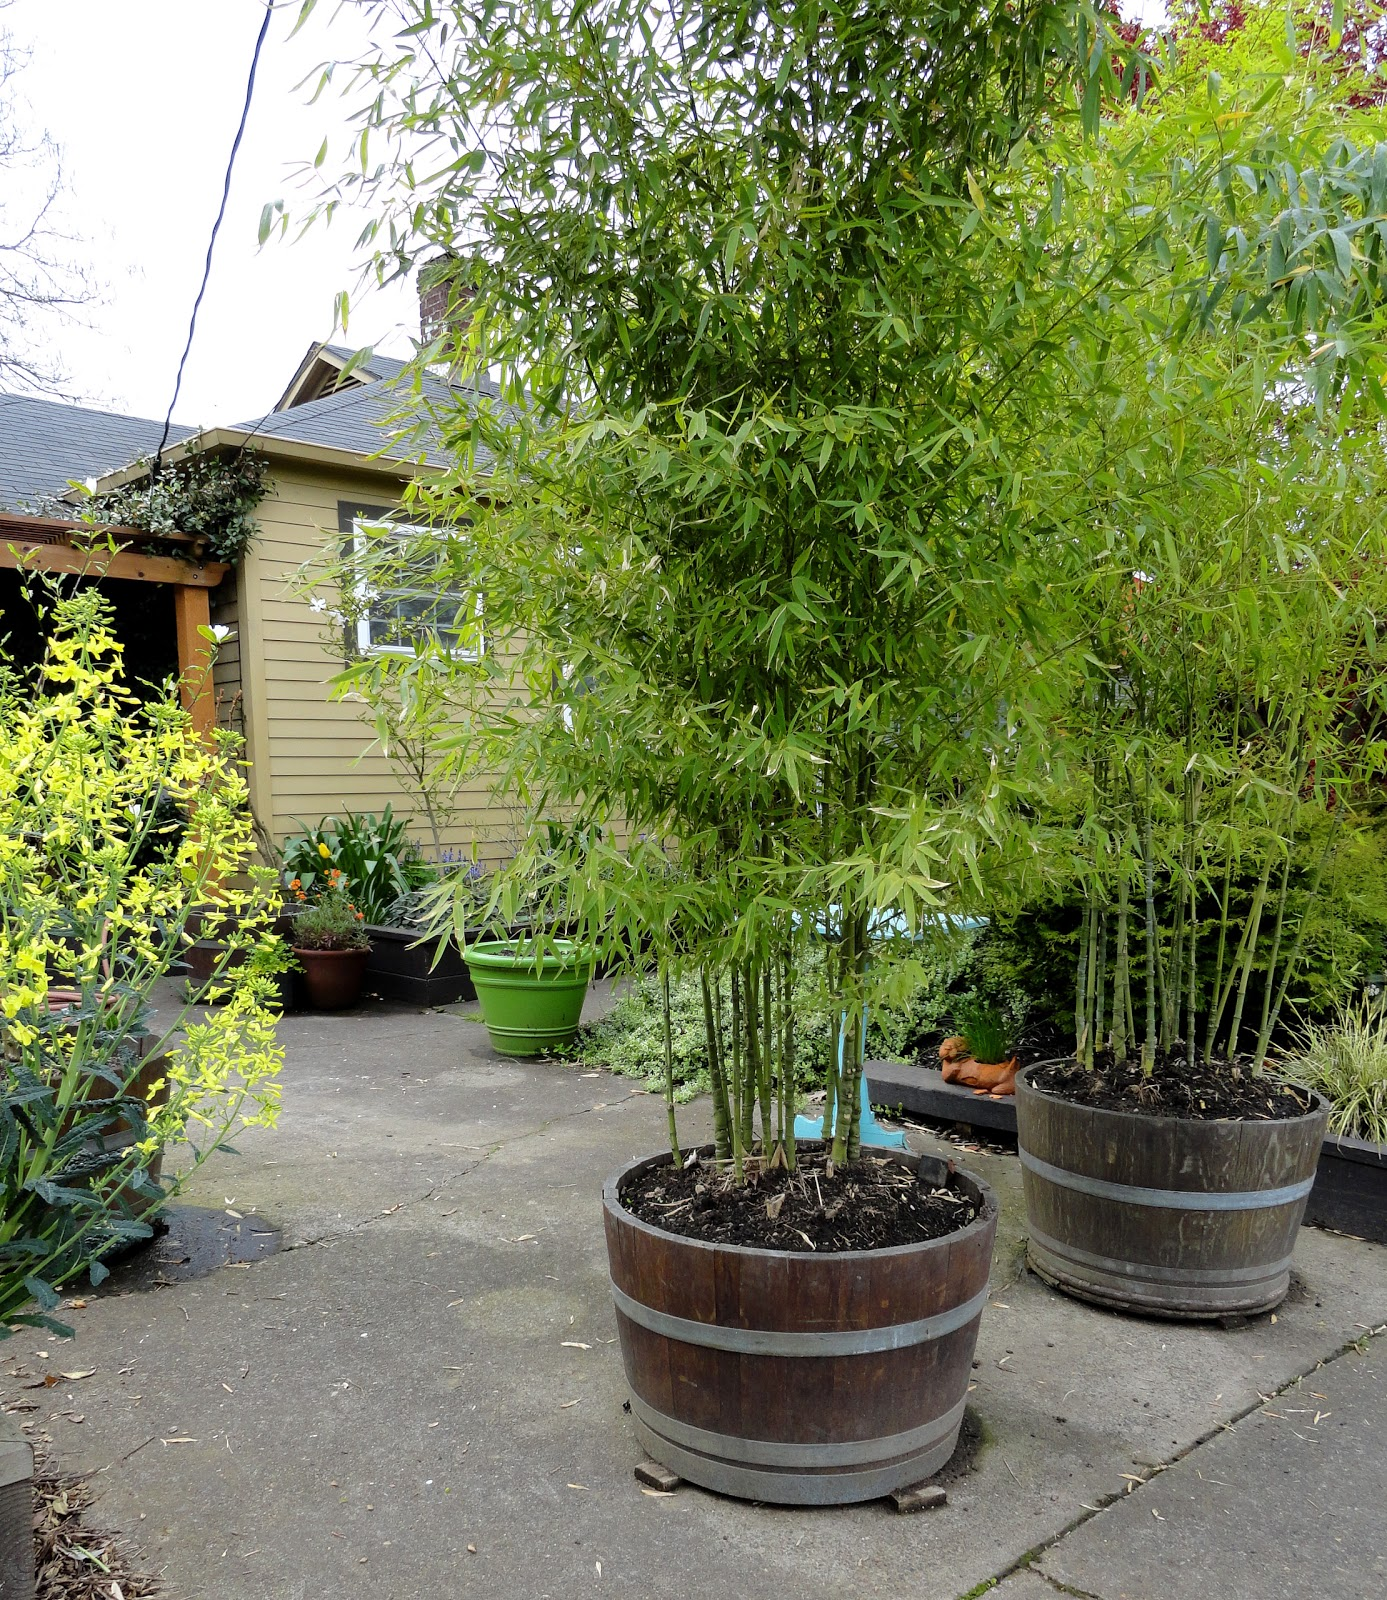 bamboo privacy garden danger garden: Bamboo for Privacy, a Follow-up